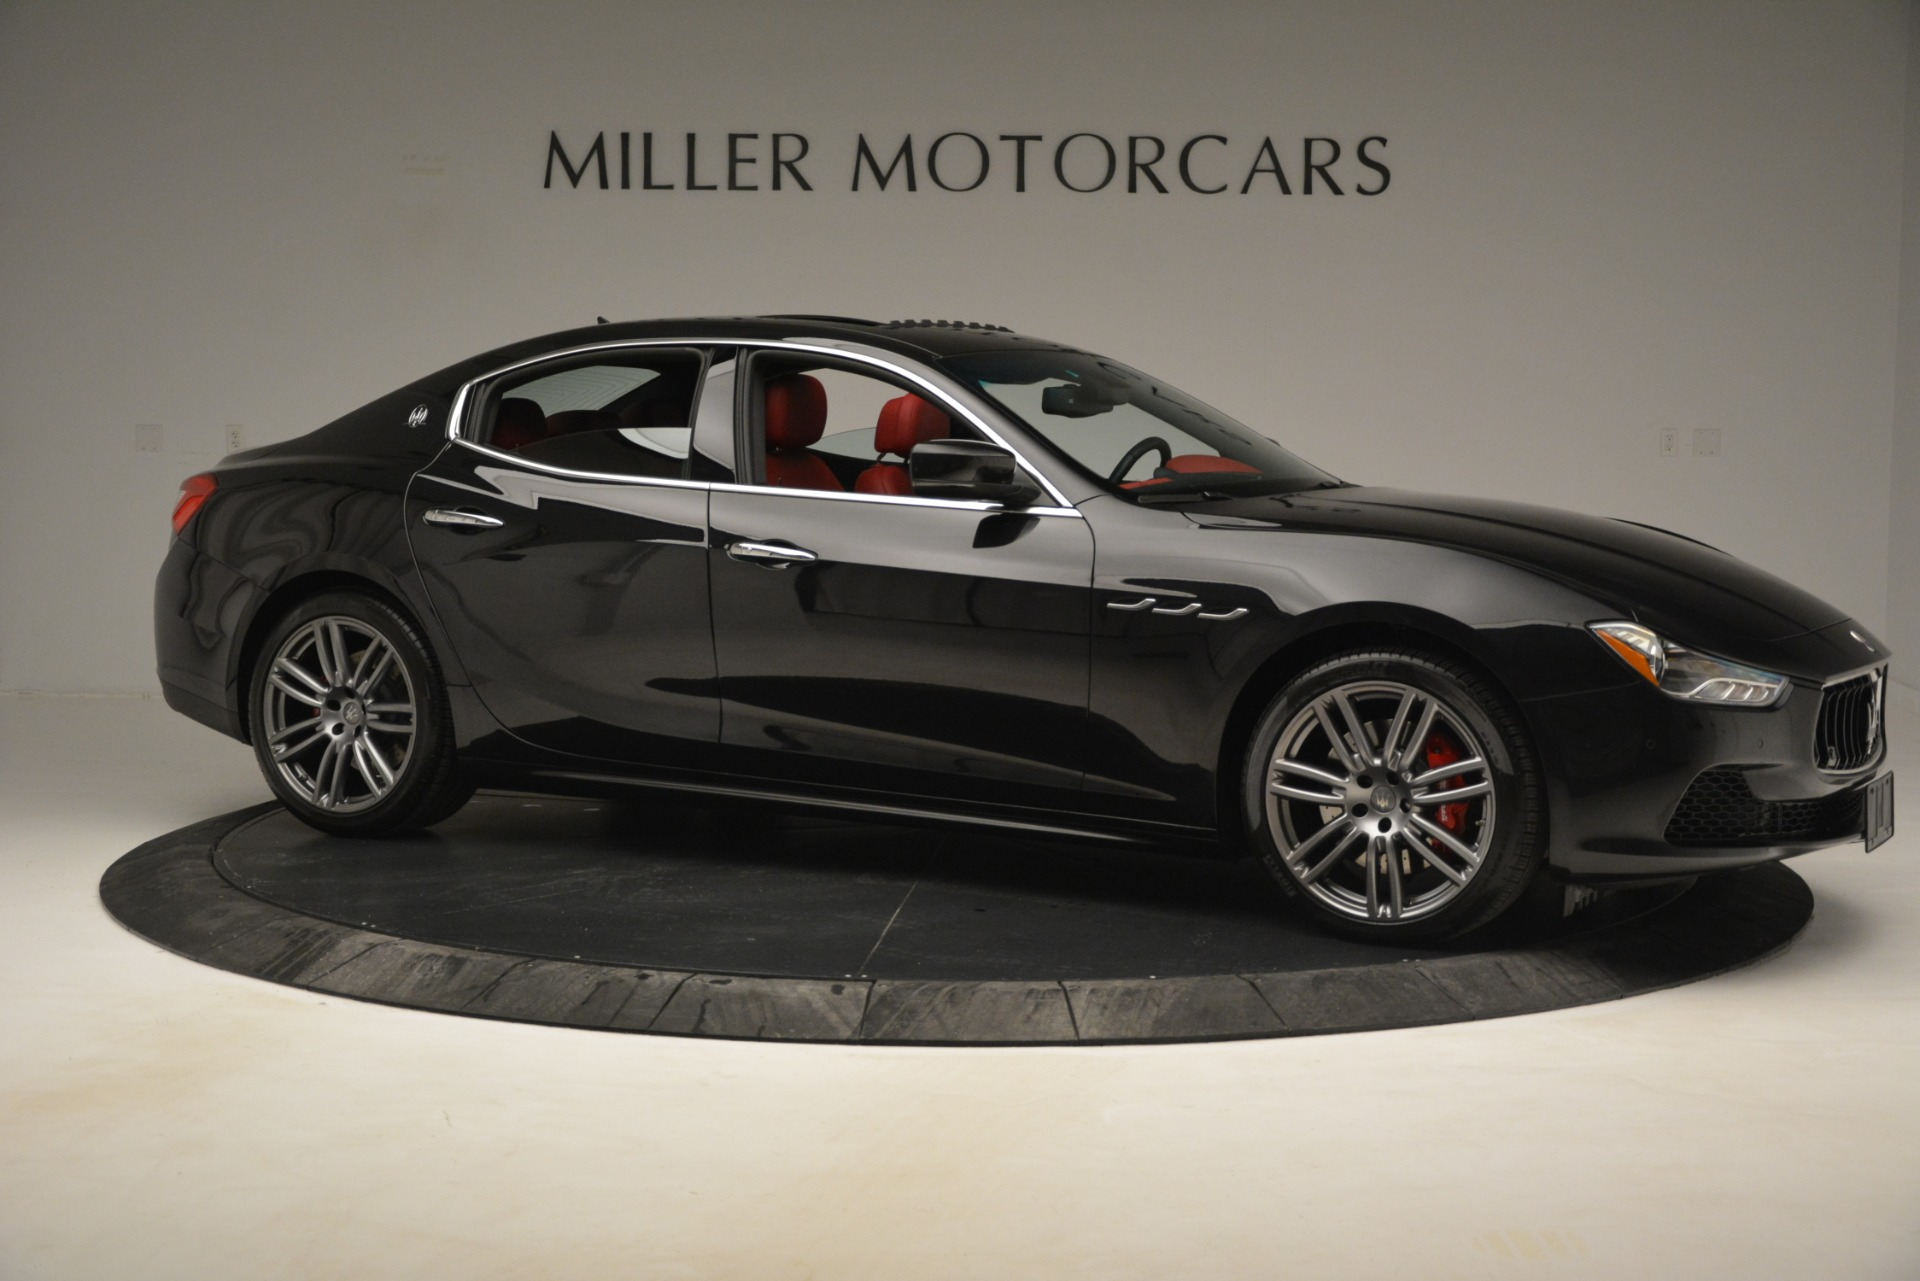 Used 2016 Maserati Ghibli S Q4 For Sale In Greenwich, CT 2945_p12